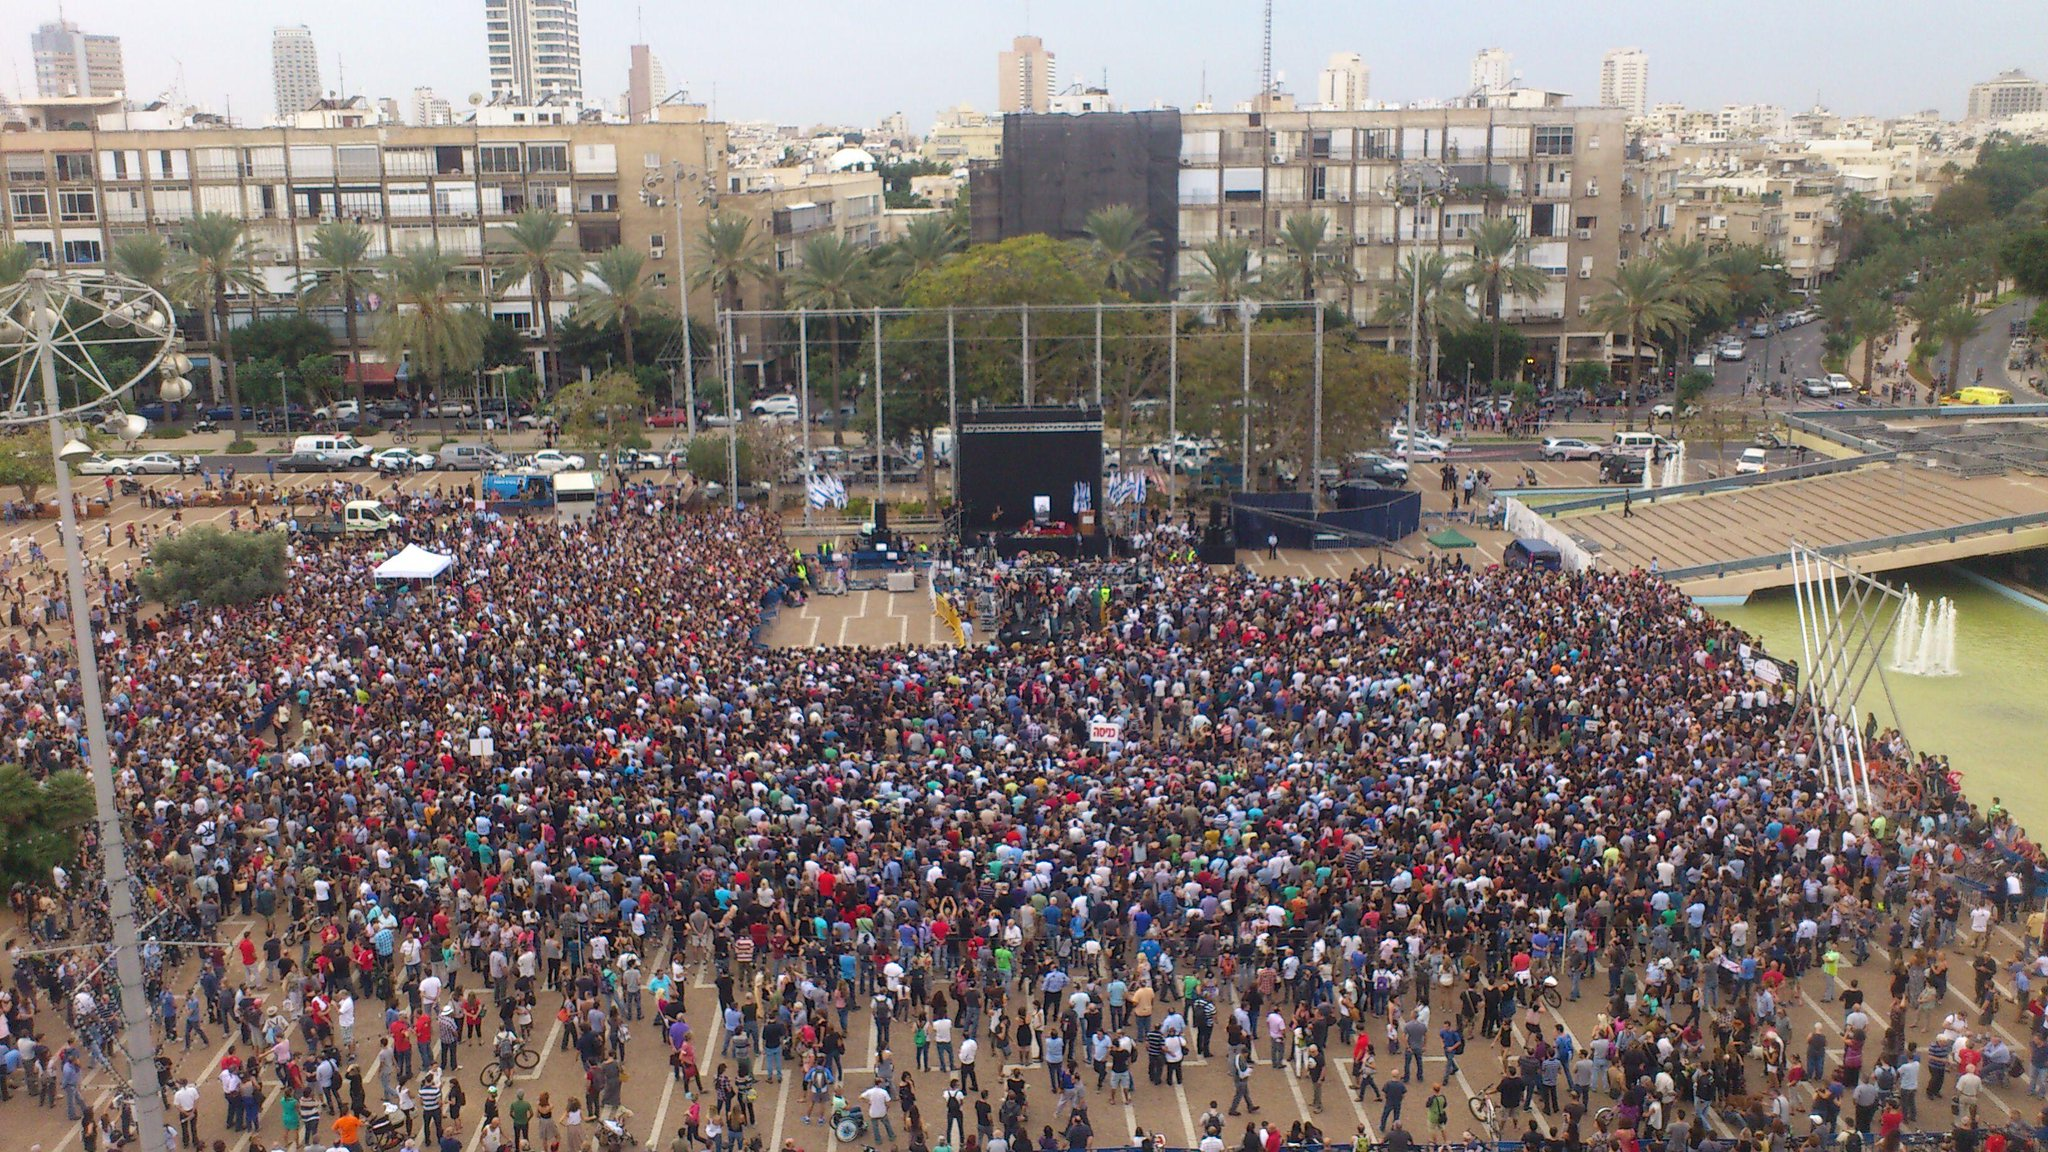 Twitter / Benhartman: Pic: Big crowd at Kikar Rabin ...